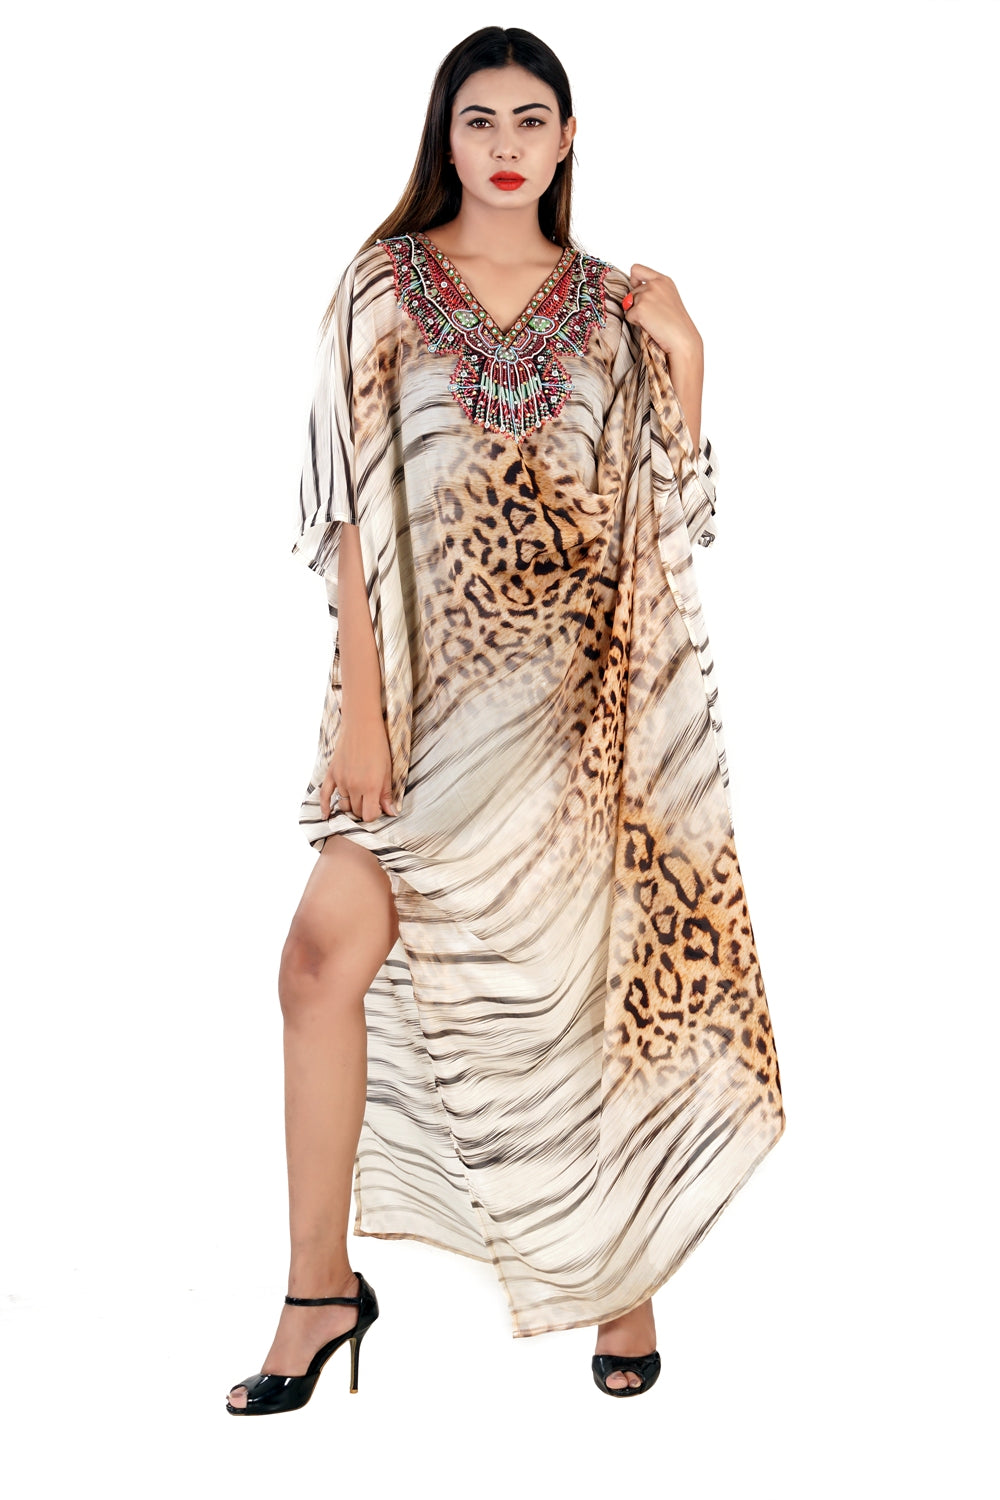 Leopard Print Empowered by Animals print kaftan Silk Kaftan with incensed embellishment of crystals pool party kaftan - Silk kaftan